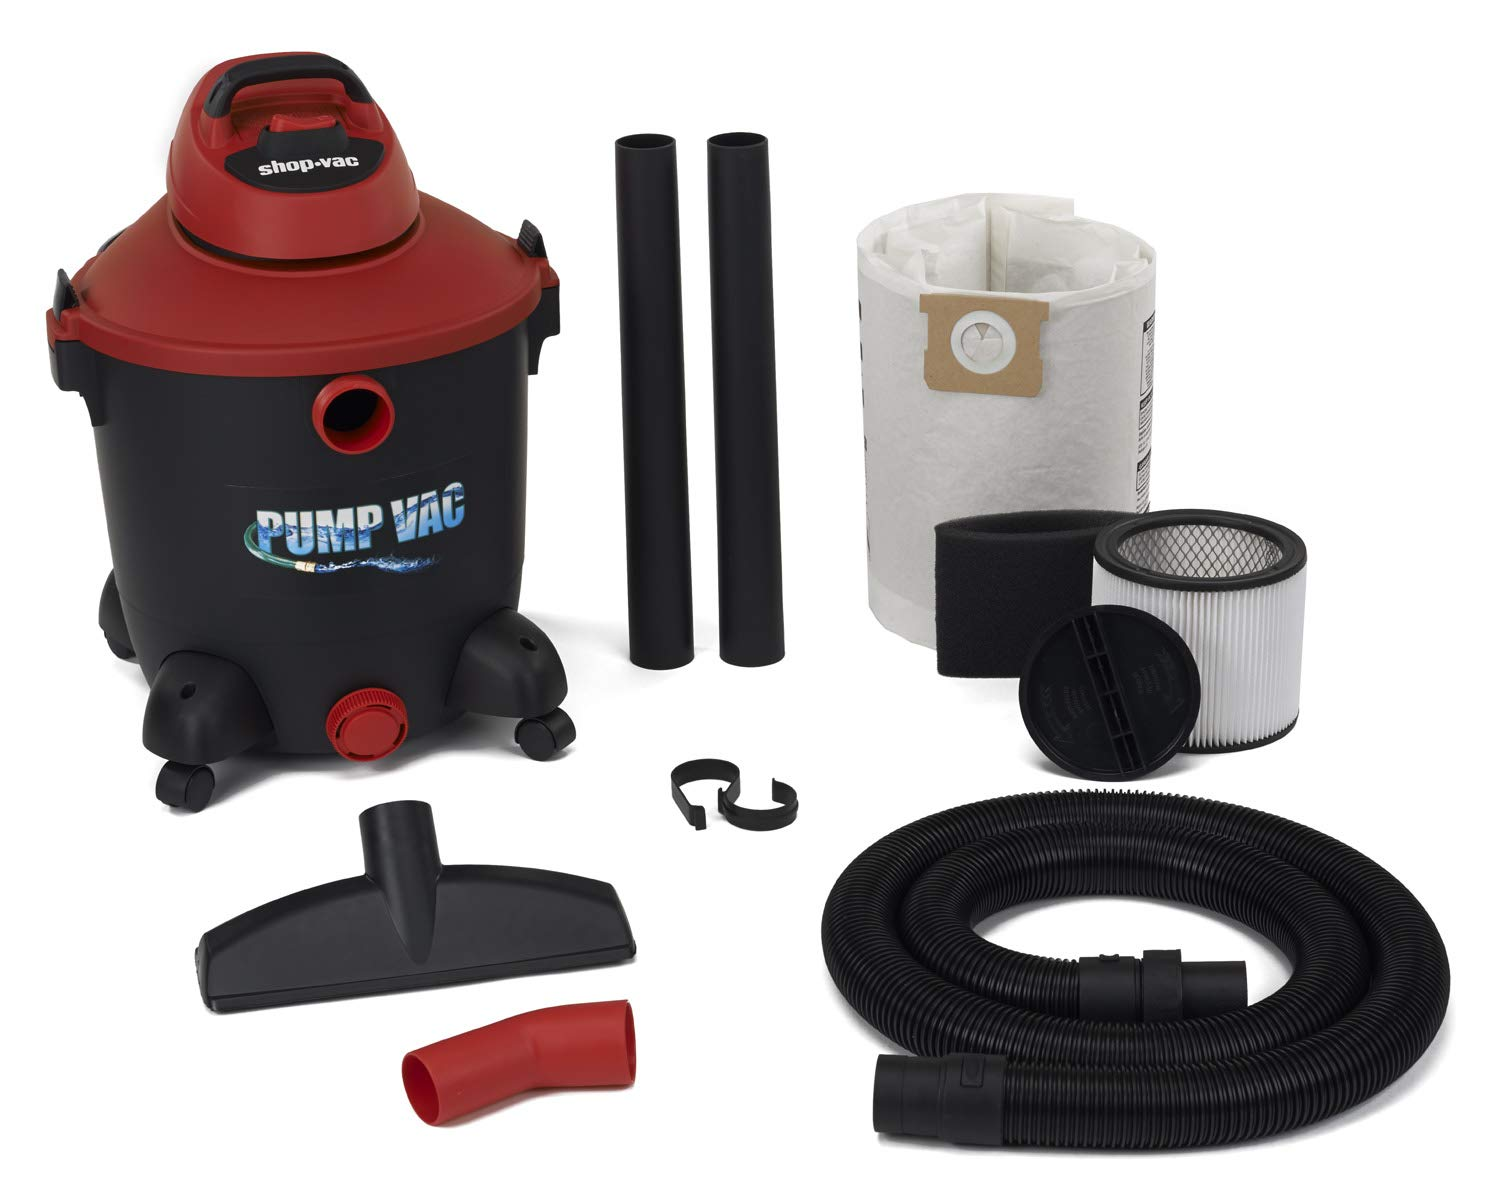 Shop Vac 5821200 12 Gal 5.0 PHP Wet Dry Vacuum with built in Pump will pump out with garden hose. Uses Type U Cartridge Type R Foam plus Type F Filter Bag by Shop-Vac